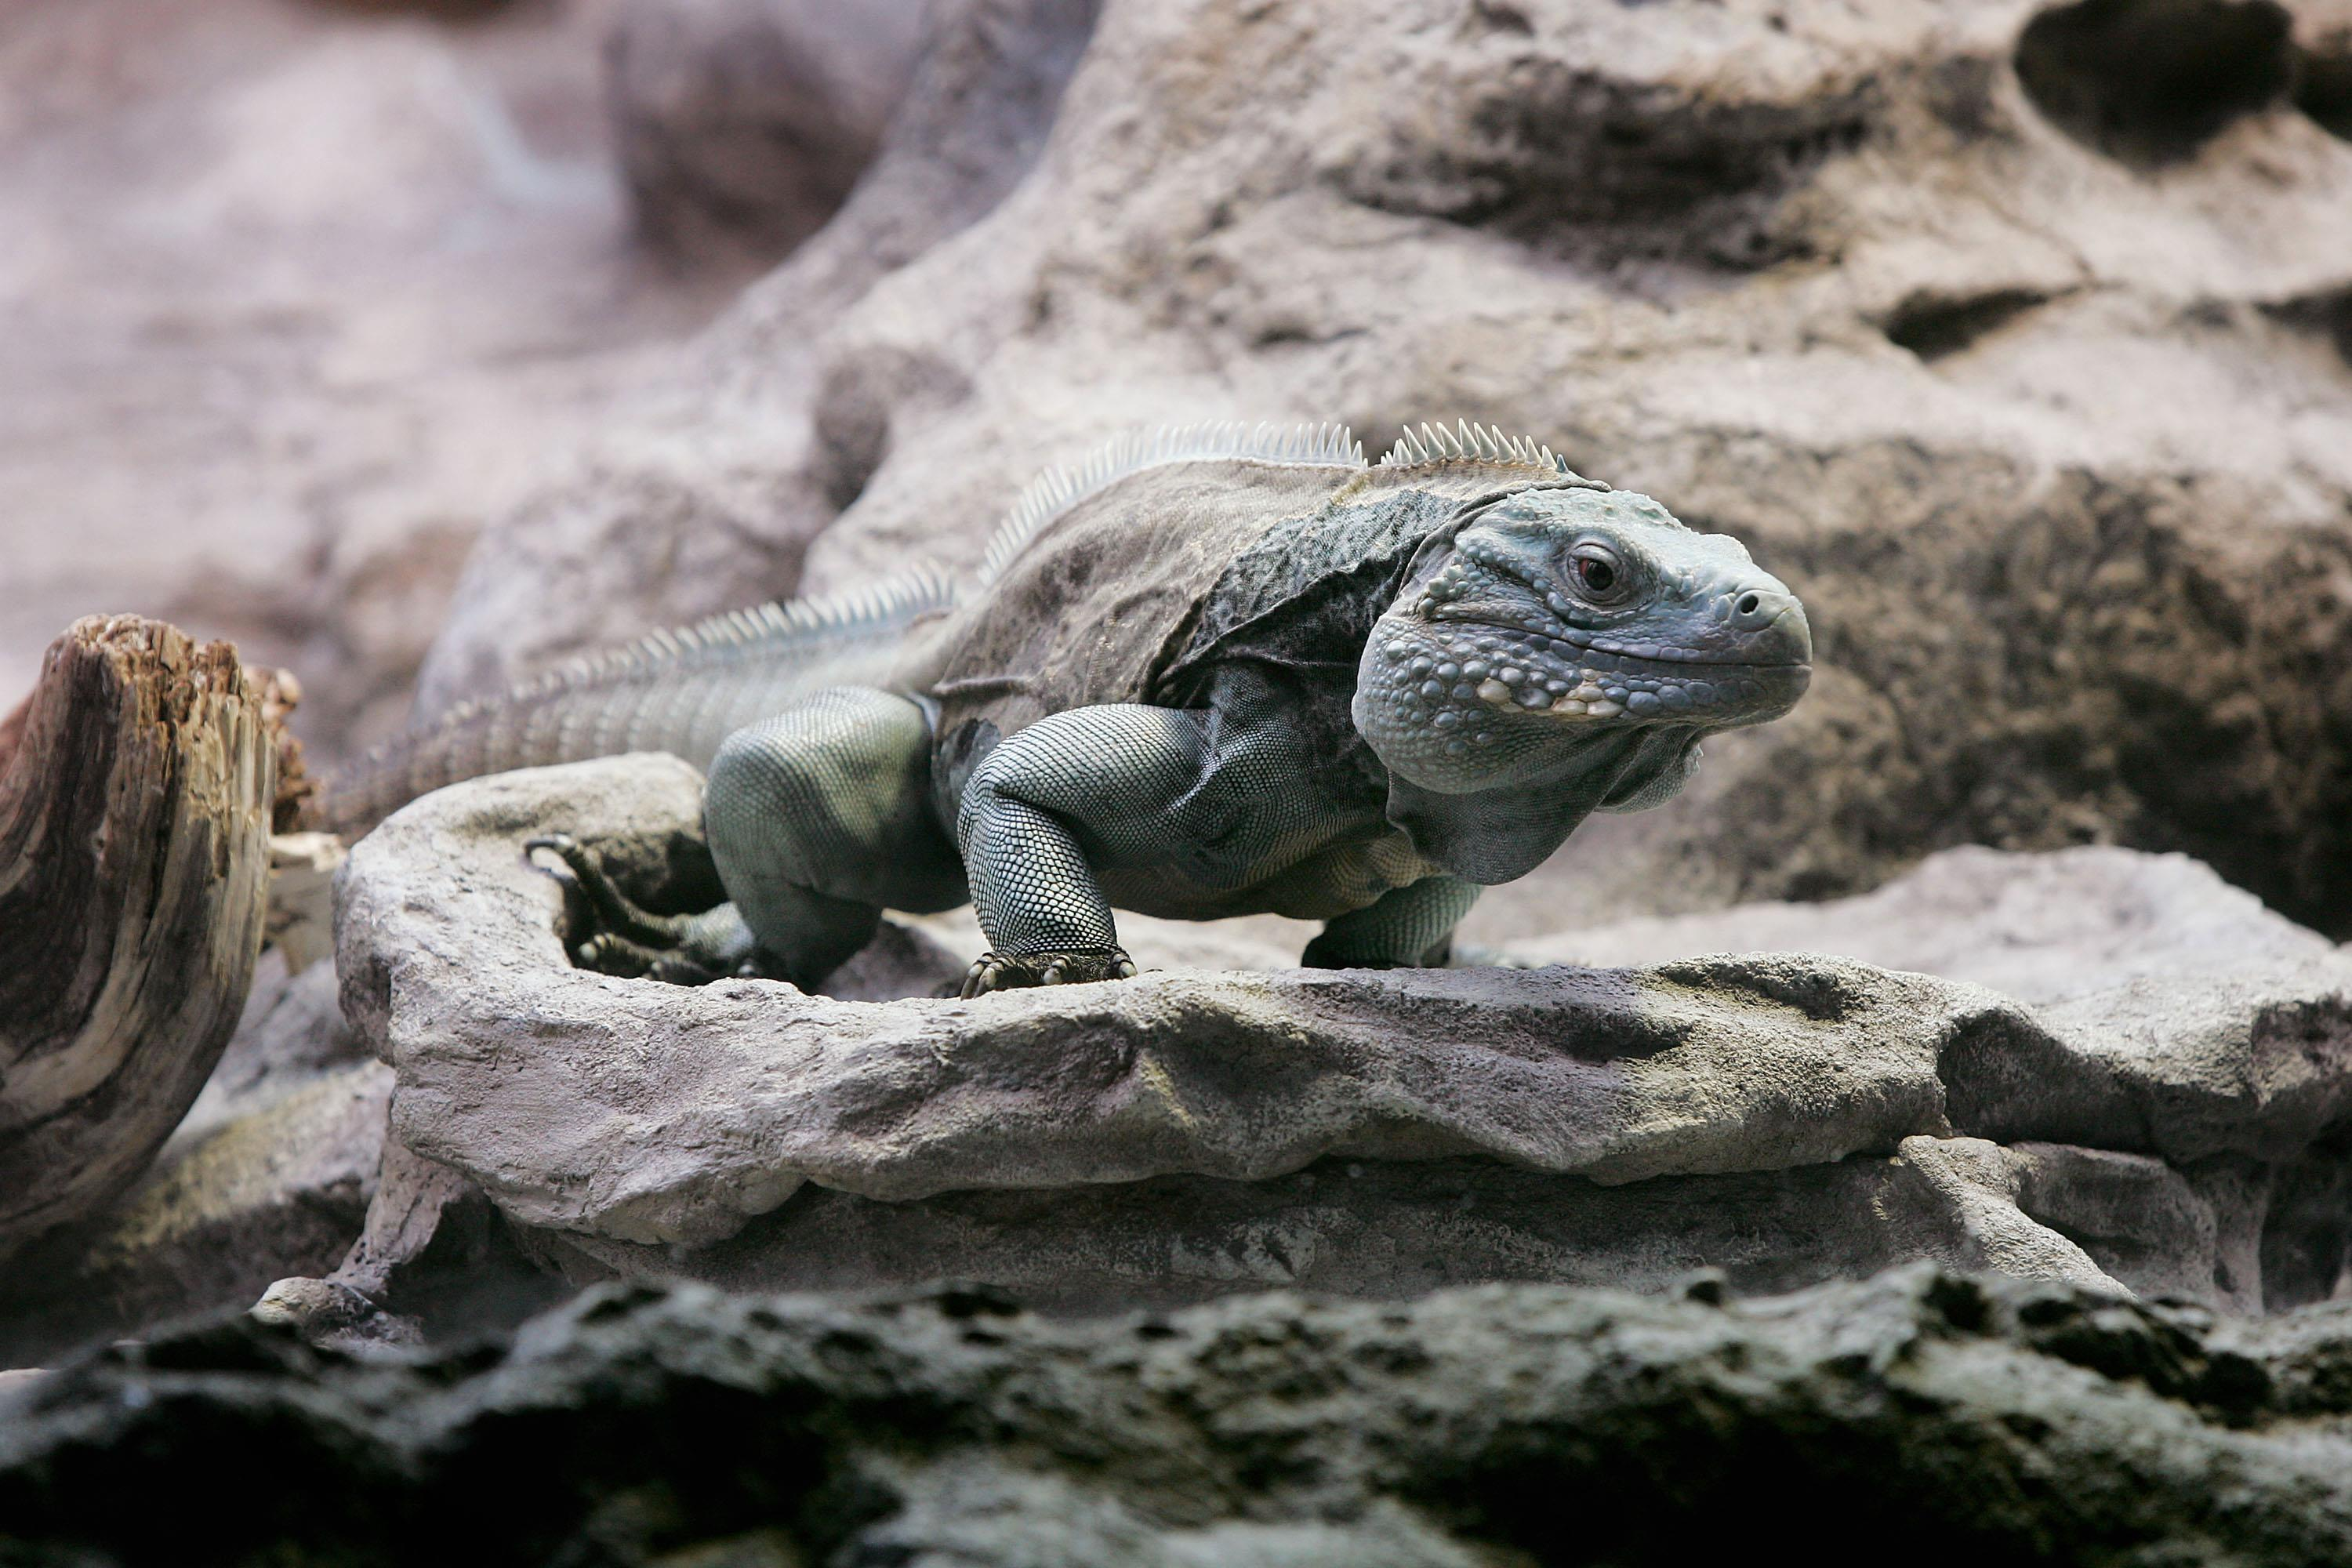 Image: A Grand Cayman Blue Iguana, one of the world's most endangered iguanas